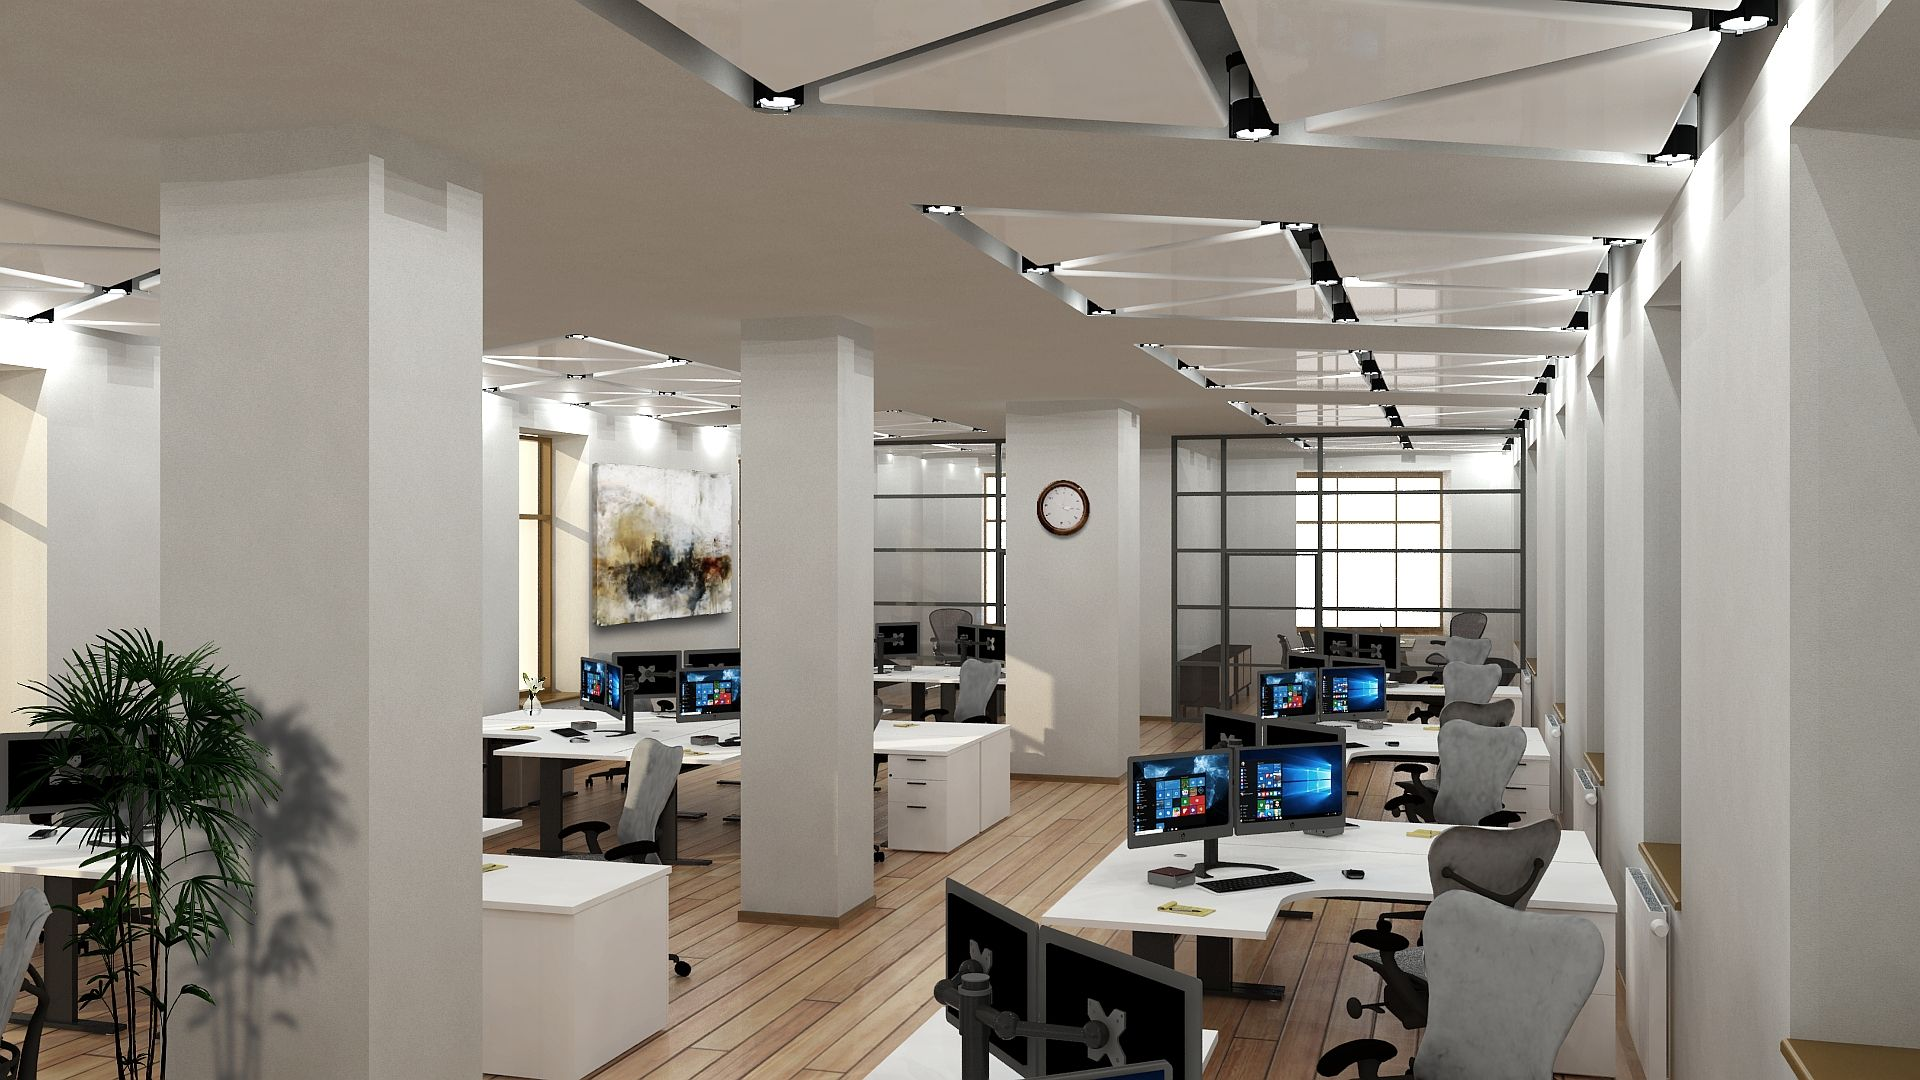 open office concepts. Open Office Concept. Concept E Concepts